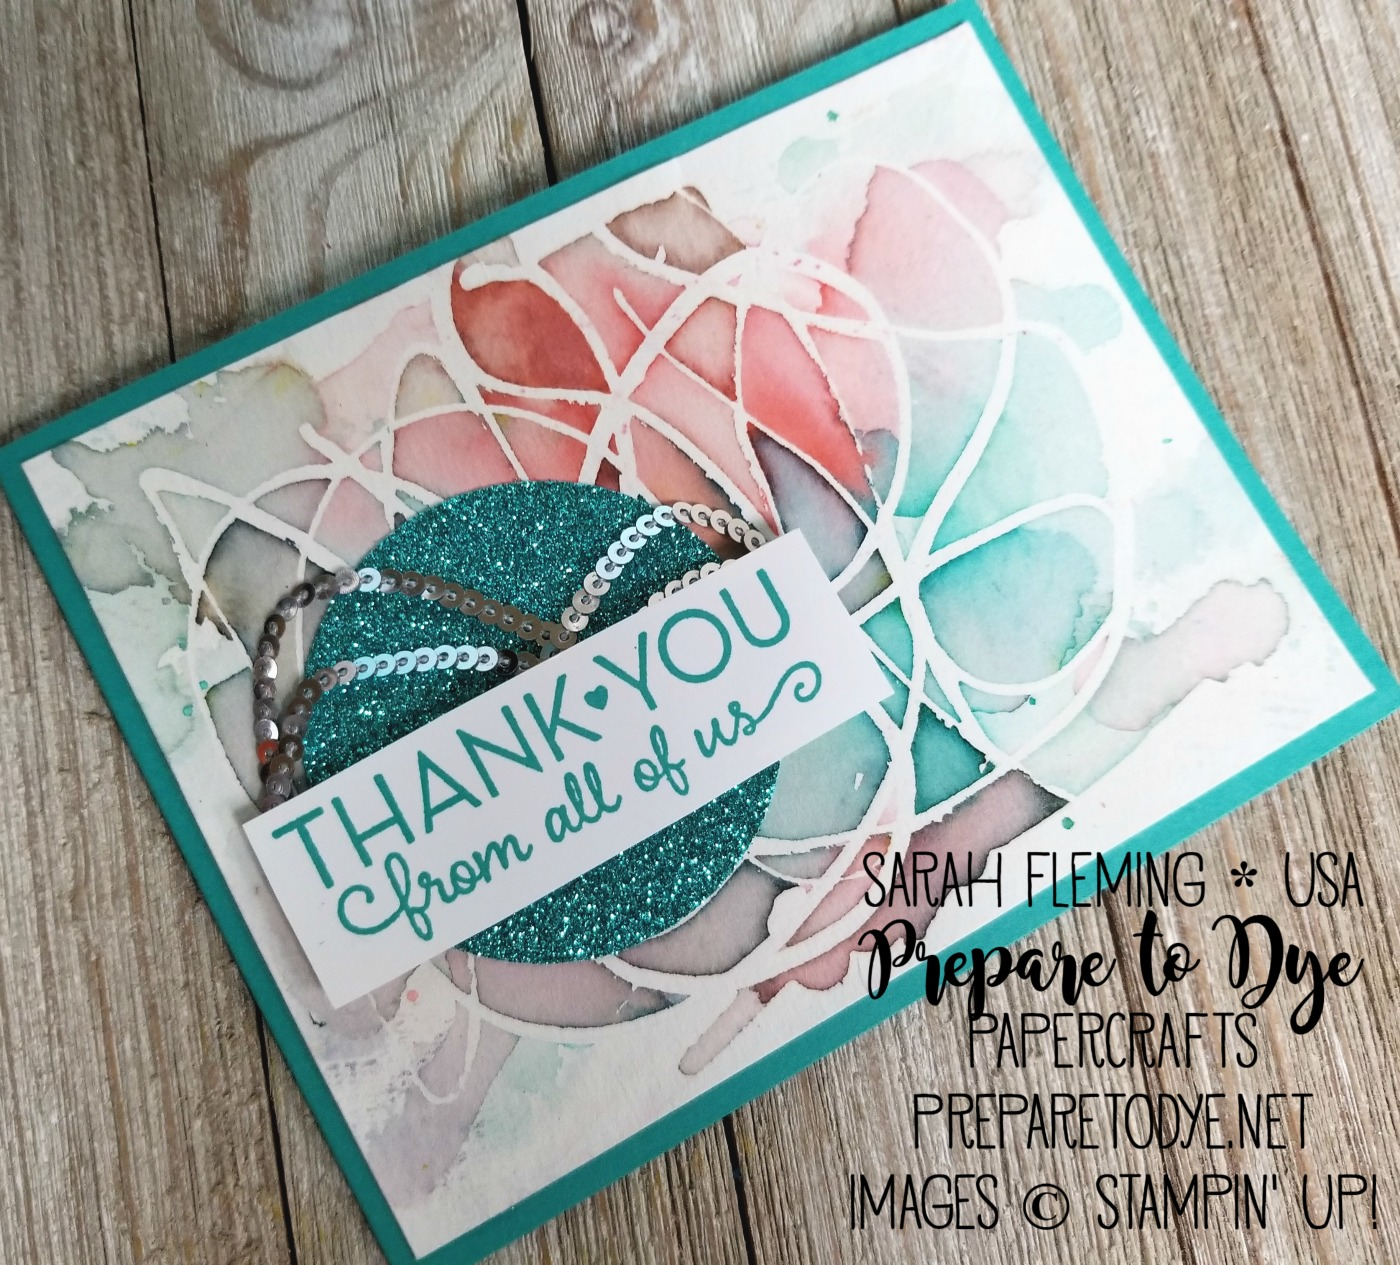 Stampin' Up! watercolor background with masking fluid, Myths & Magic Glimmer Paper, One Big Meaning - Ink & Inspiration Blog Hop - Sarah Fleming - Prepare to Dye Papercrafts